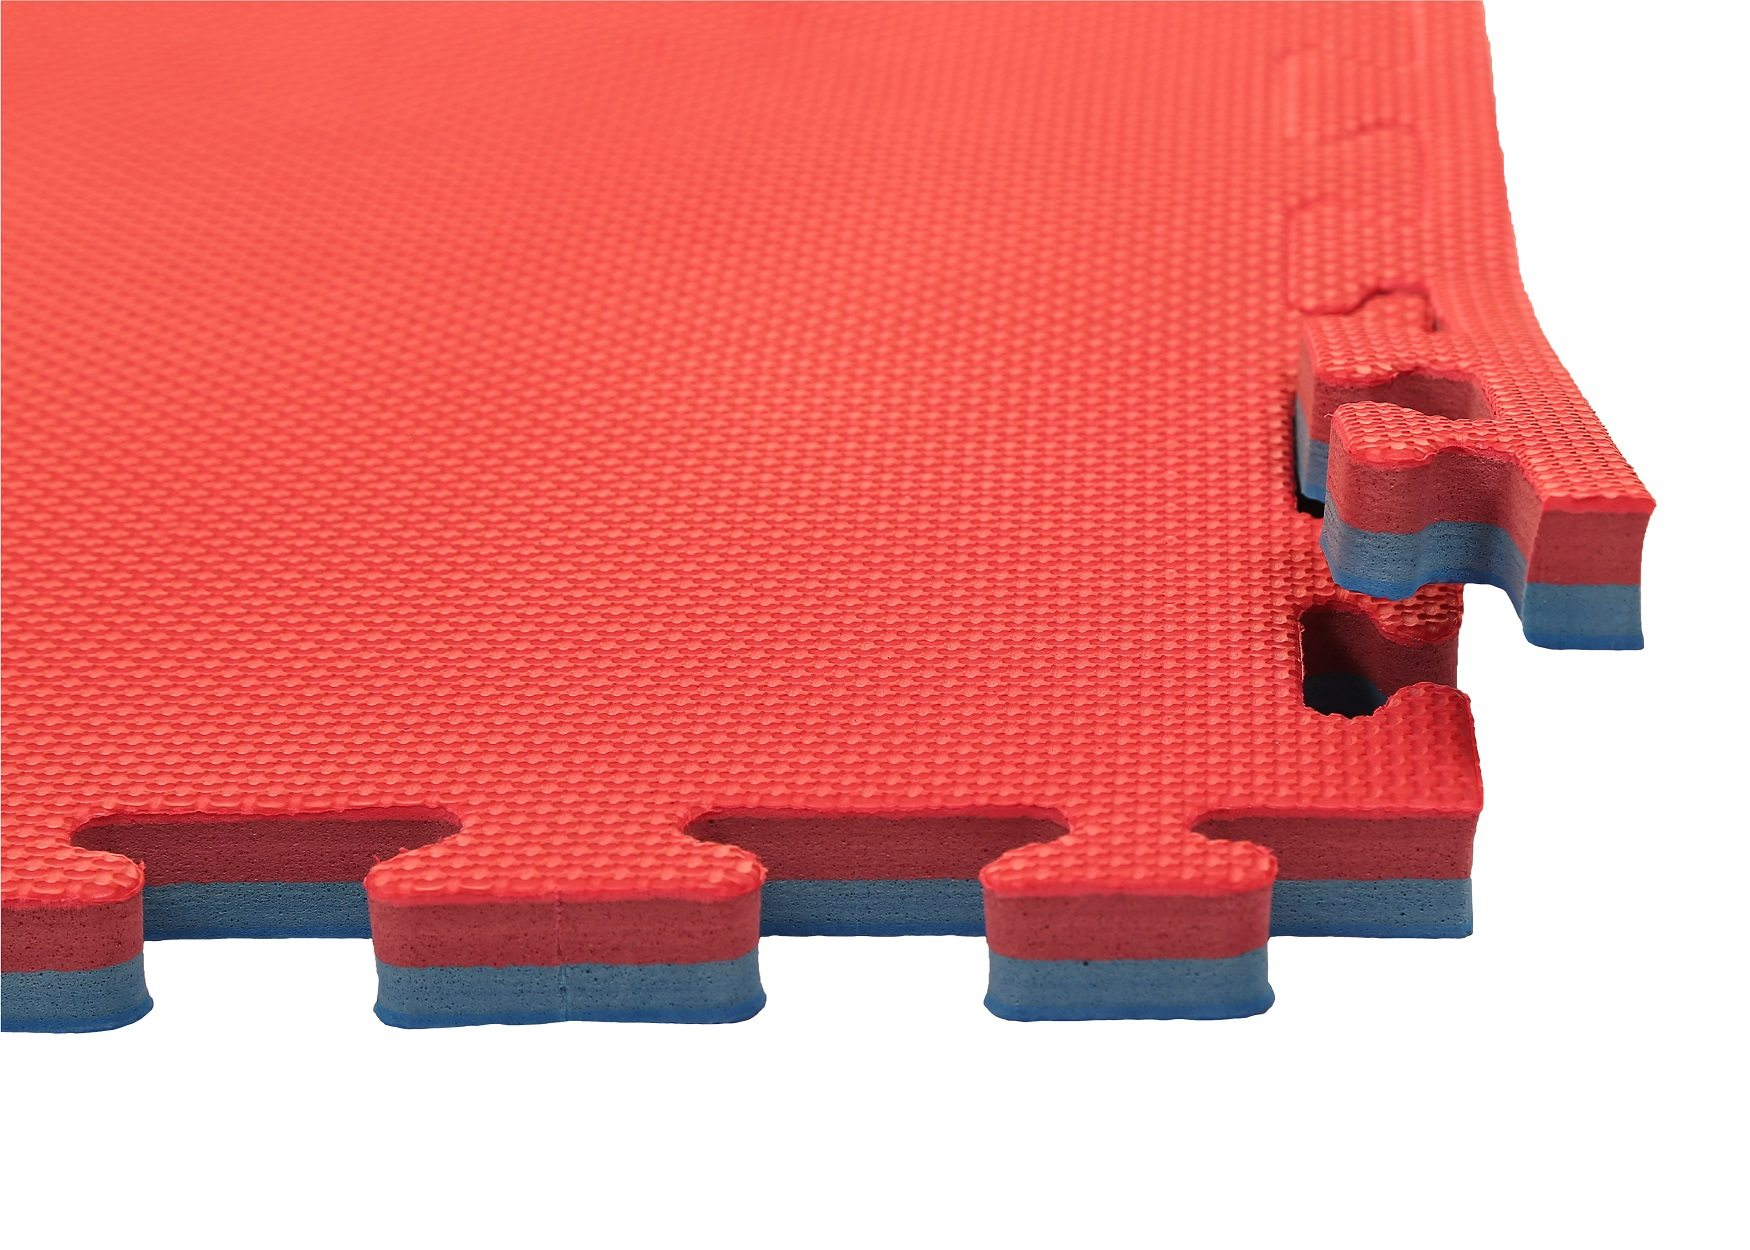 Blue And Red 20mm Jigsaw Mat Foams4sports Gym Flooring